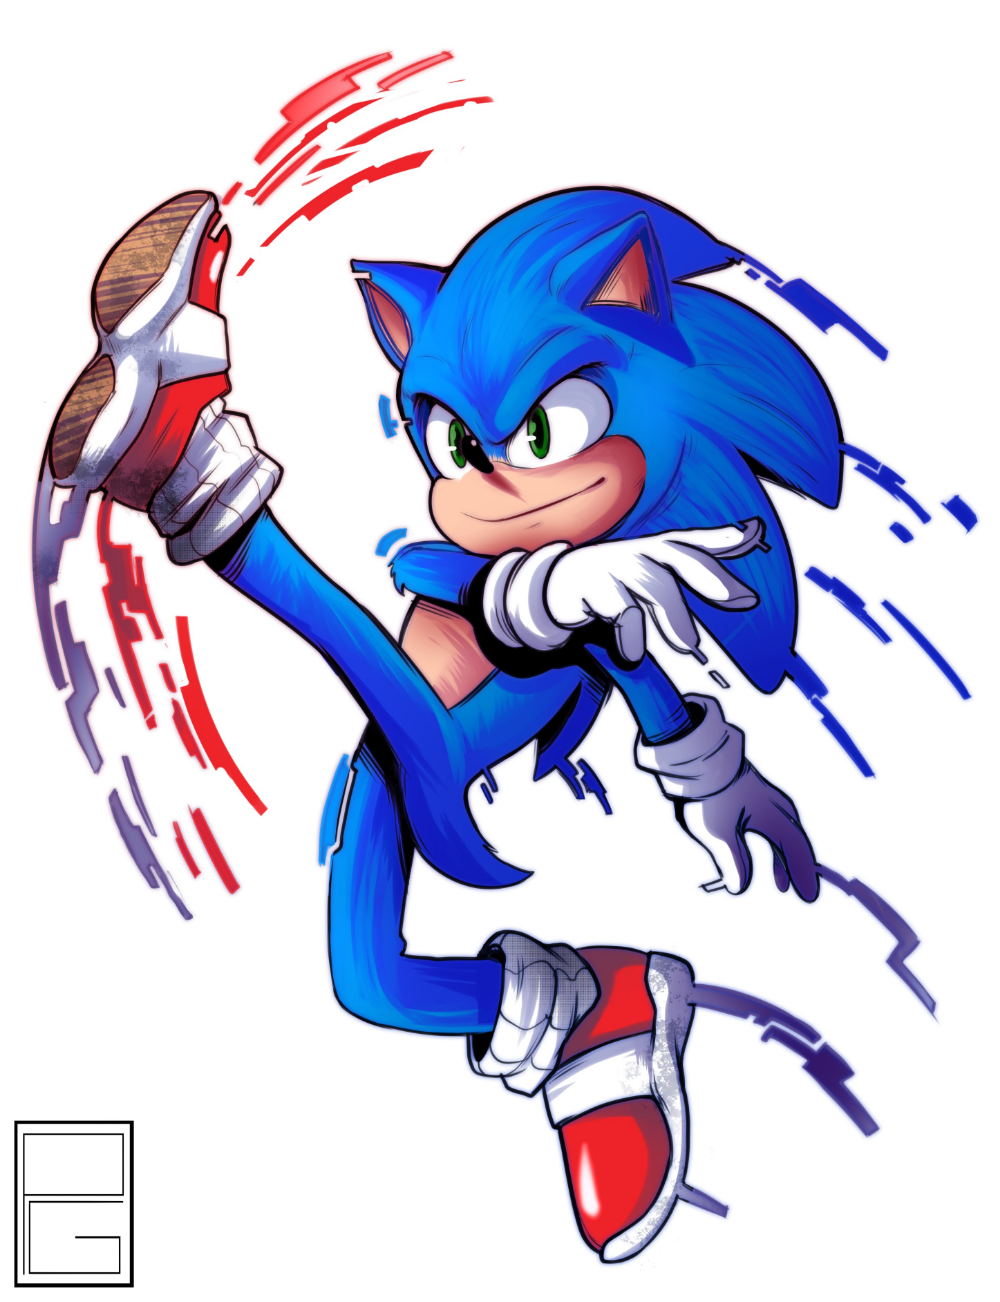 Paulo Gazola on is part of Sonic and shadow, Sonic, Sonic mania, Sonic fan art, Sonic the hedgehog, Hedgehog art - E pra testar a nova Wacom, tinha que ser esse carinha! MadeWithWacom SonicMovie""